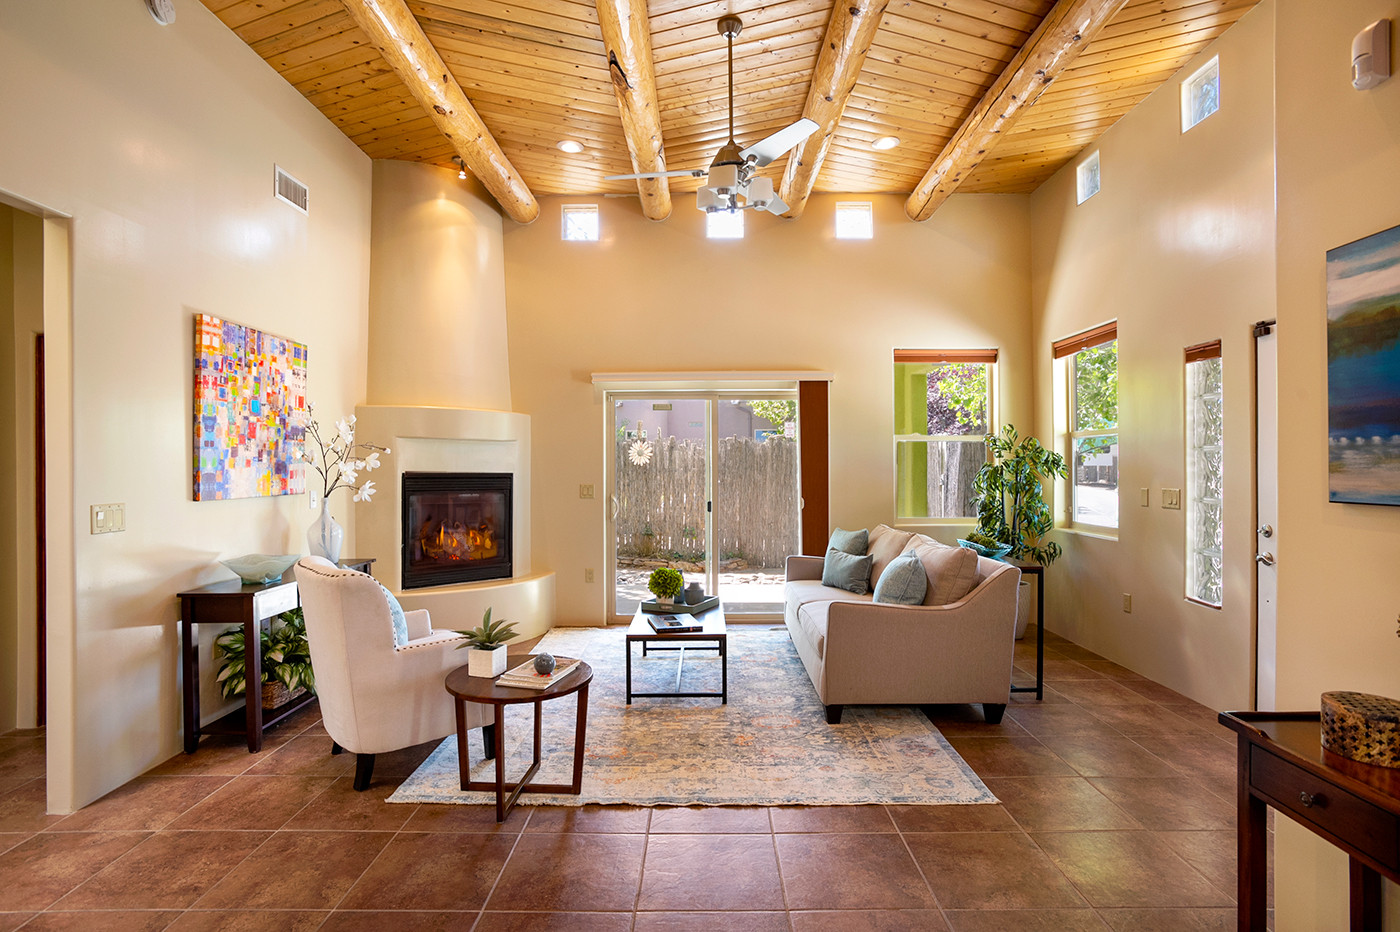 Calle Beatrice | Easy Access to Patio From Living Room